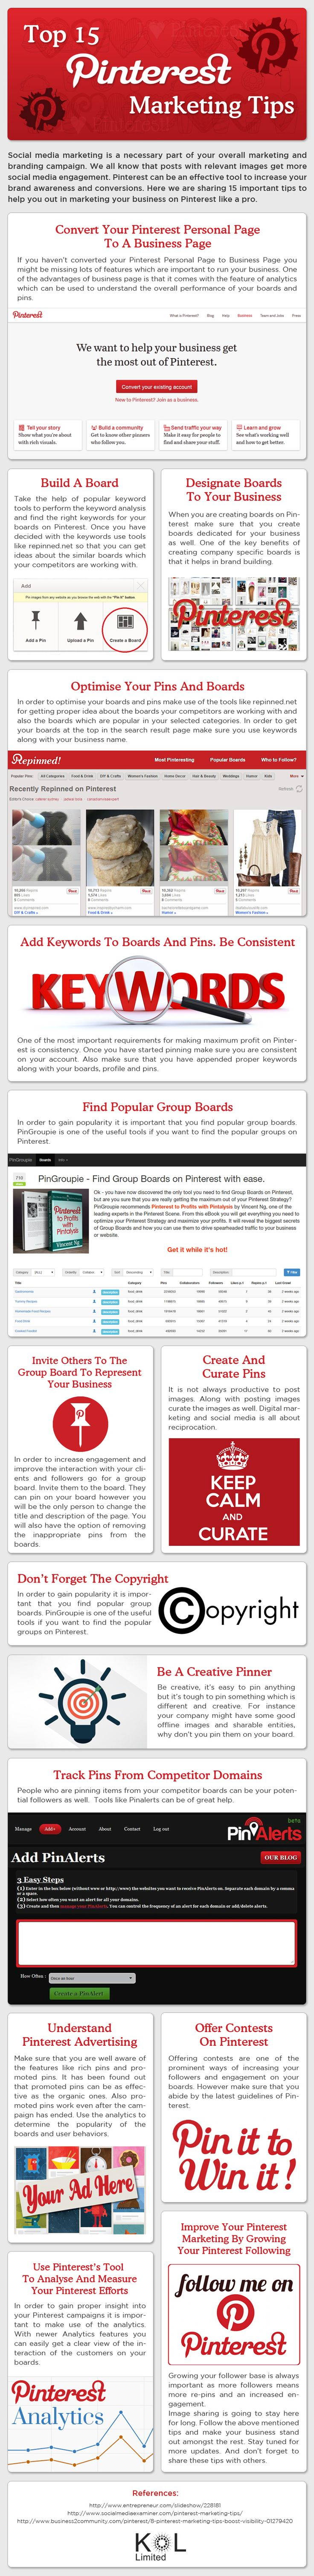 Top 15 Most Important Pinterest Marketing Tips